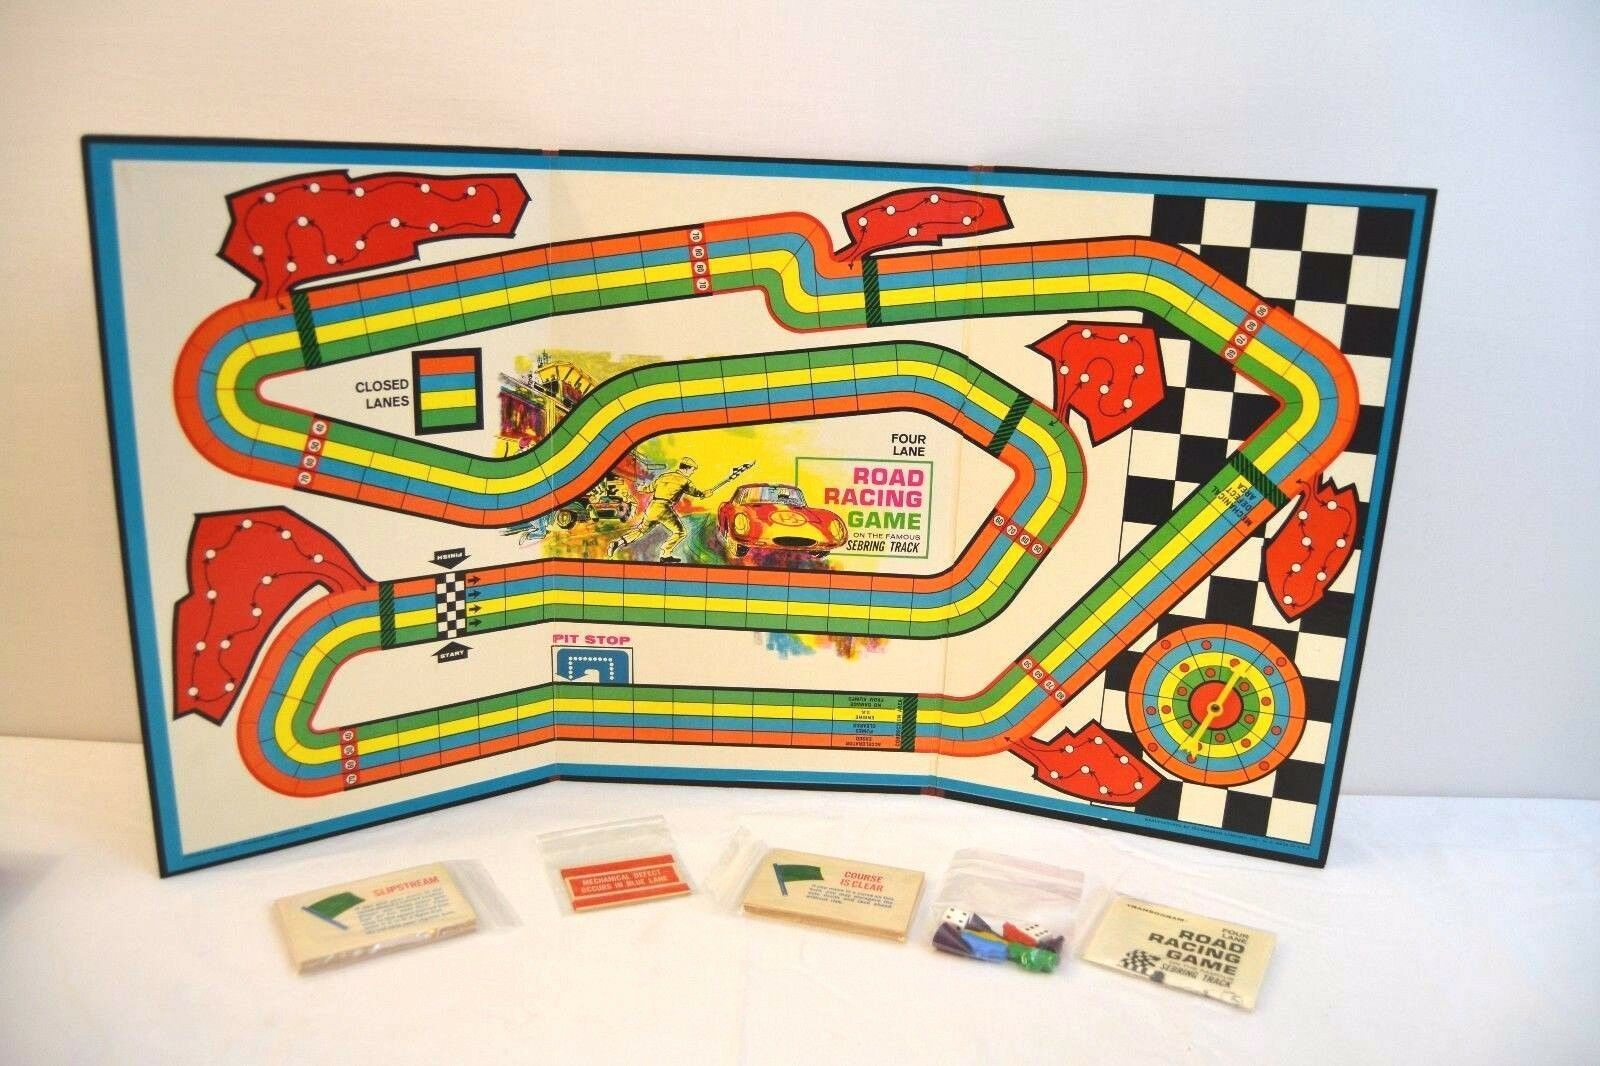 Transogram Rare Four Lane Road Racing Game on the Famous Sebring Track 1963  image 2